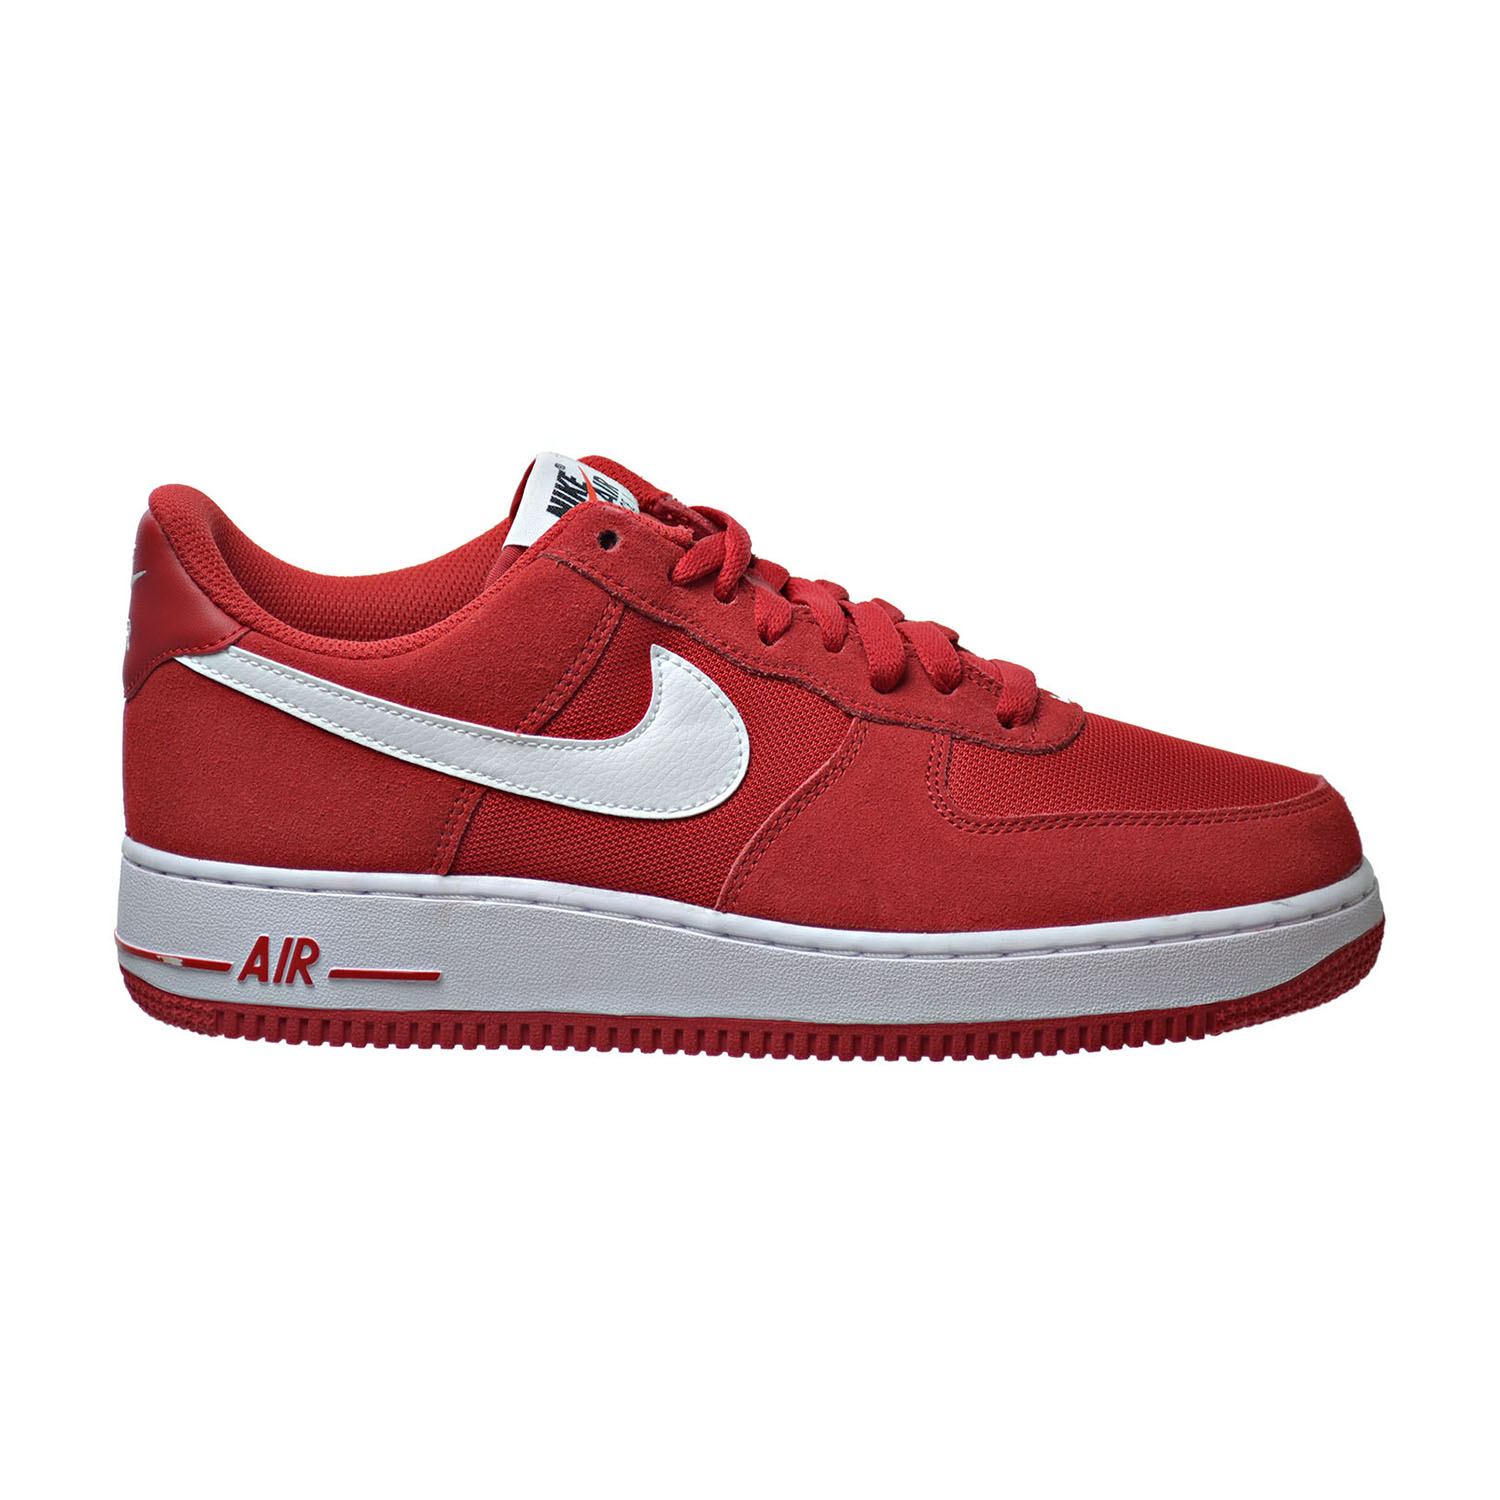 well wreapped Nike Air Force 1 Men's Shoes Game Red/White 820266 601